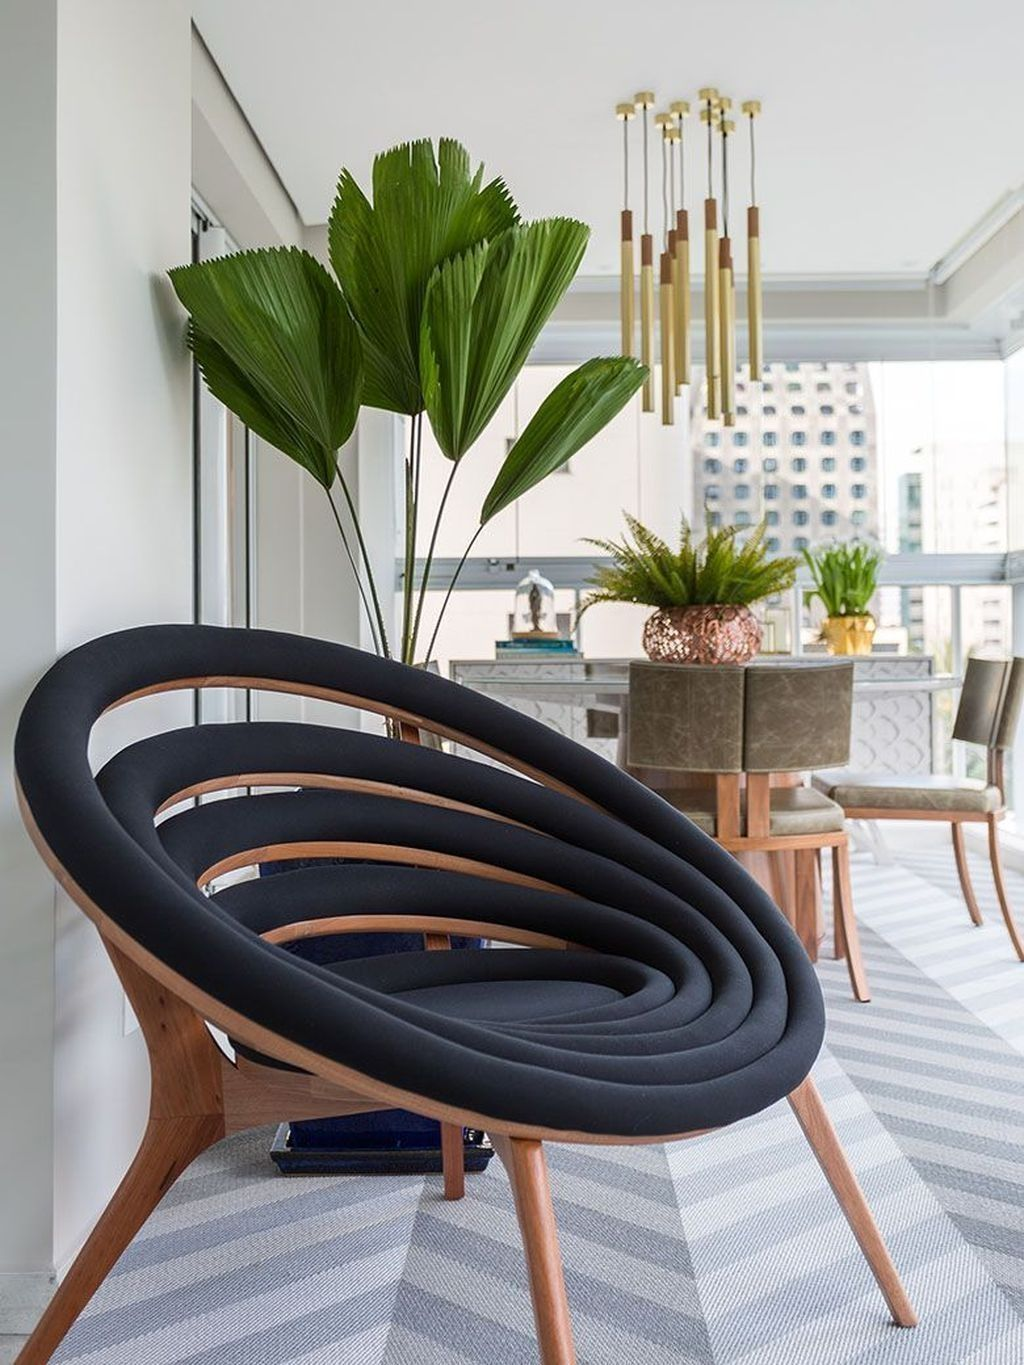 50 Modern Furniture Design For Your Futuristic Looking House